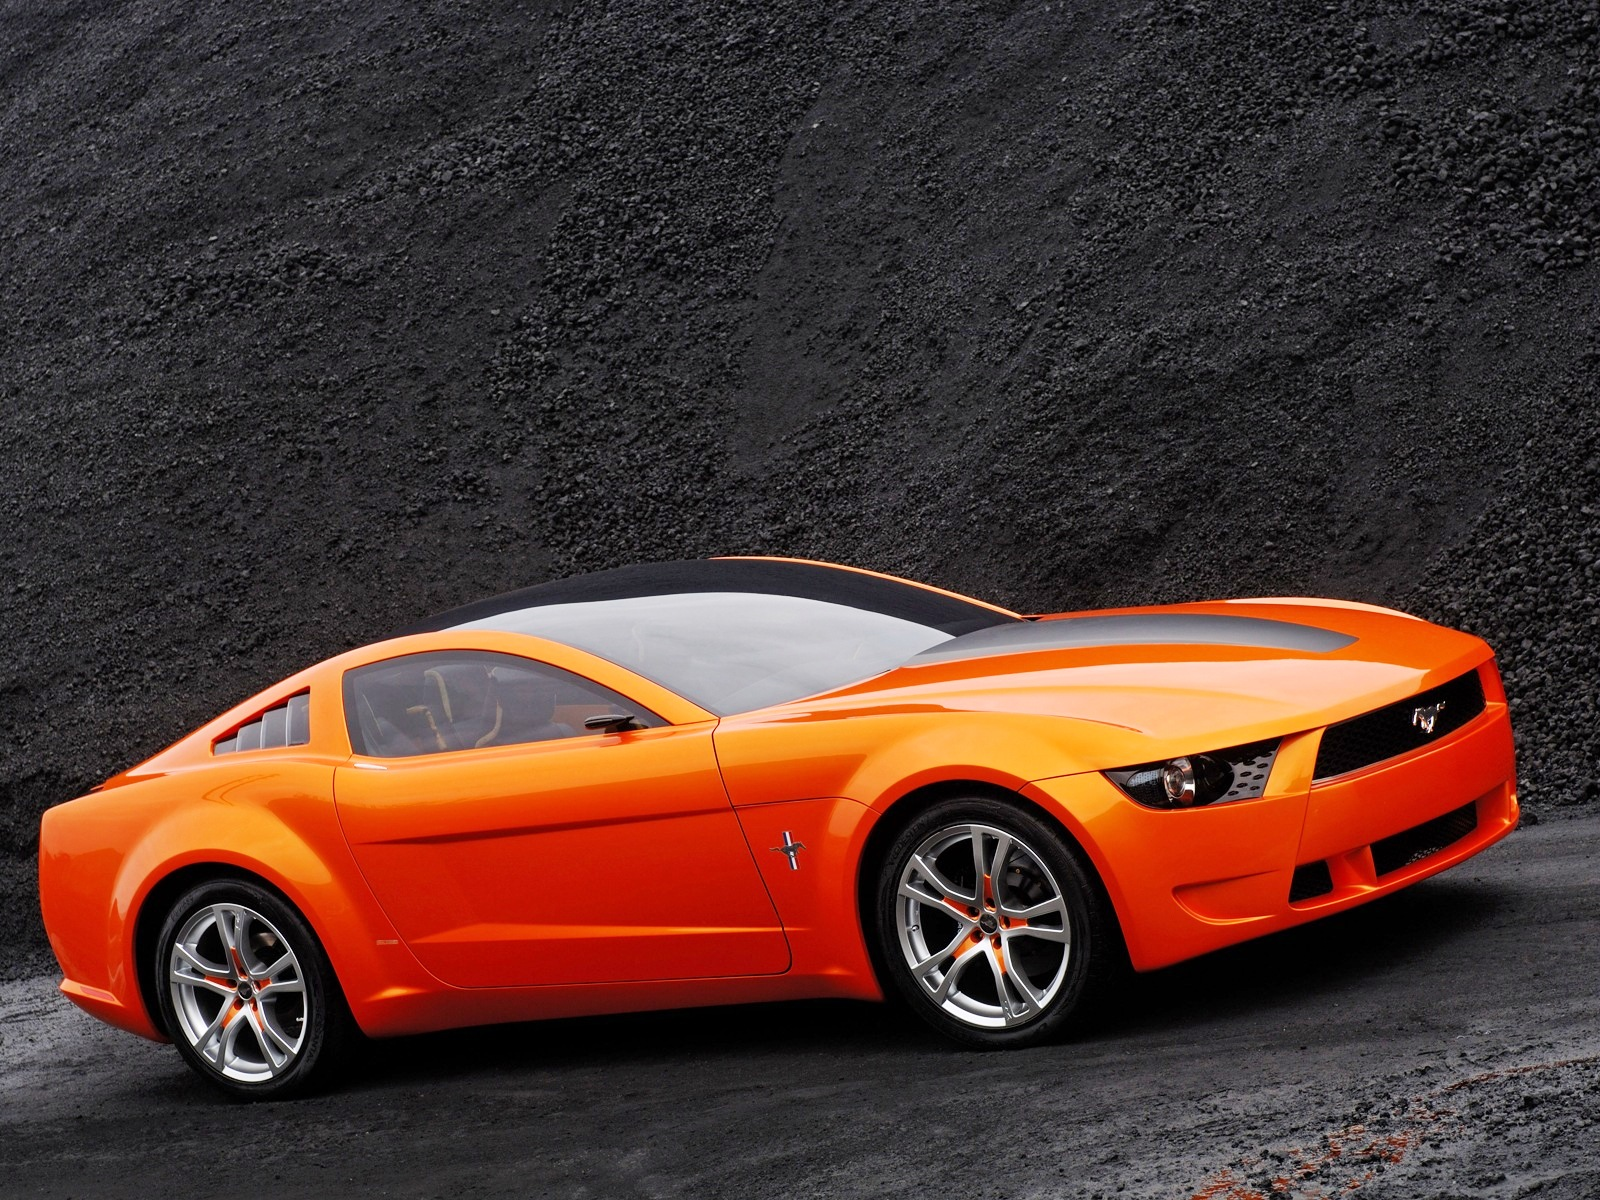 Mustang Convertible 2015 Wallpapers And Hd Images Watch this out 1600x1200